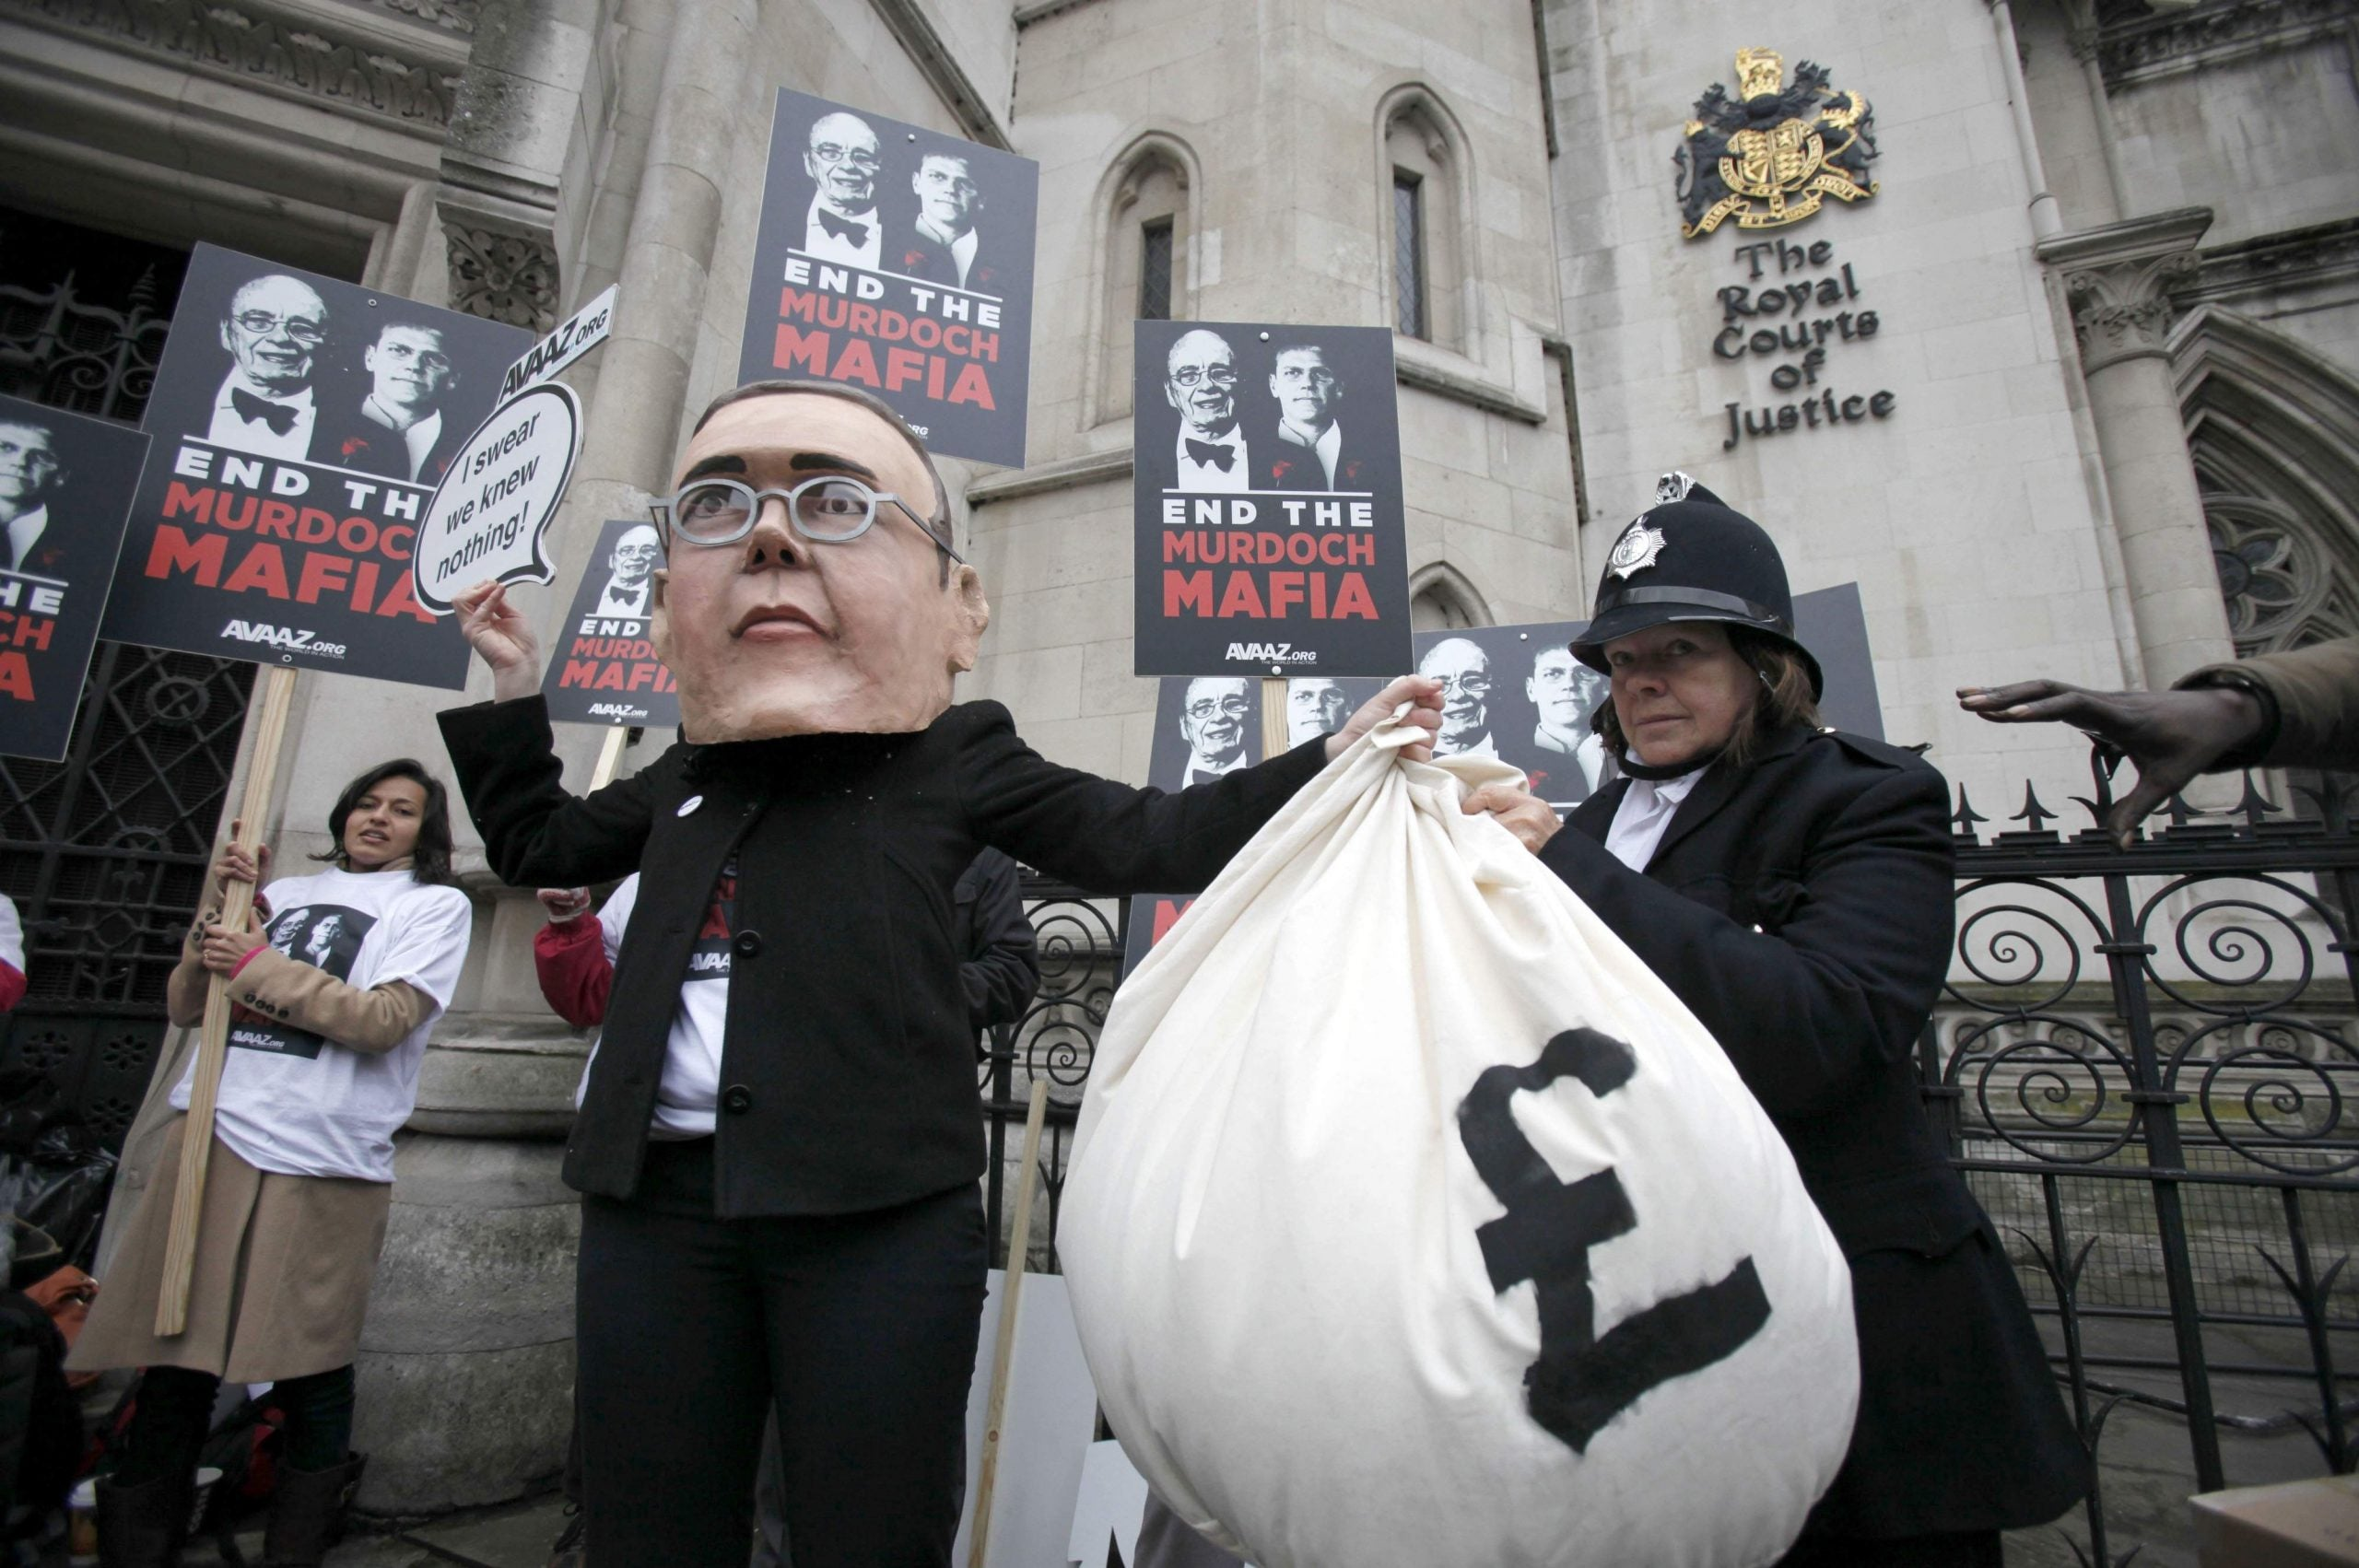 Think Britain is as corrupt as Russia? It's time to get out more